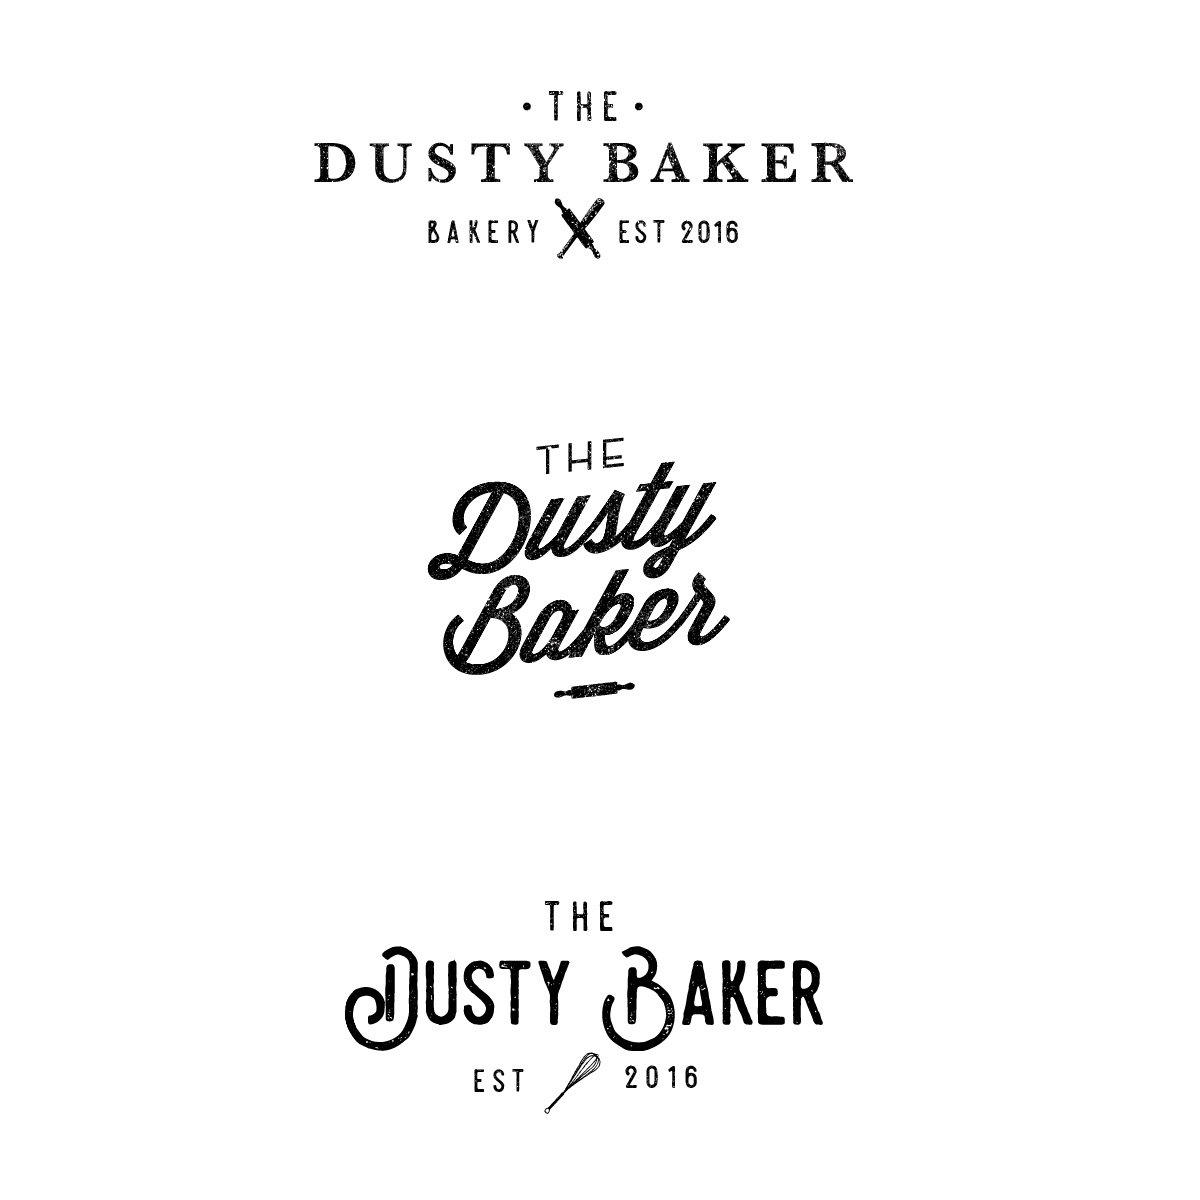 Logo Concepts | Brand + Website Design by Casi Long Design | The Dusty Baker Bakery | casilong.com #casilongdesign #fearlesspursuit